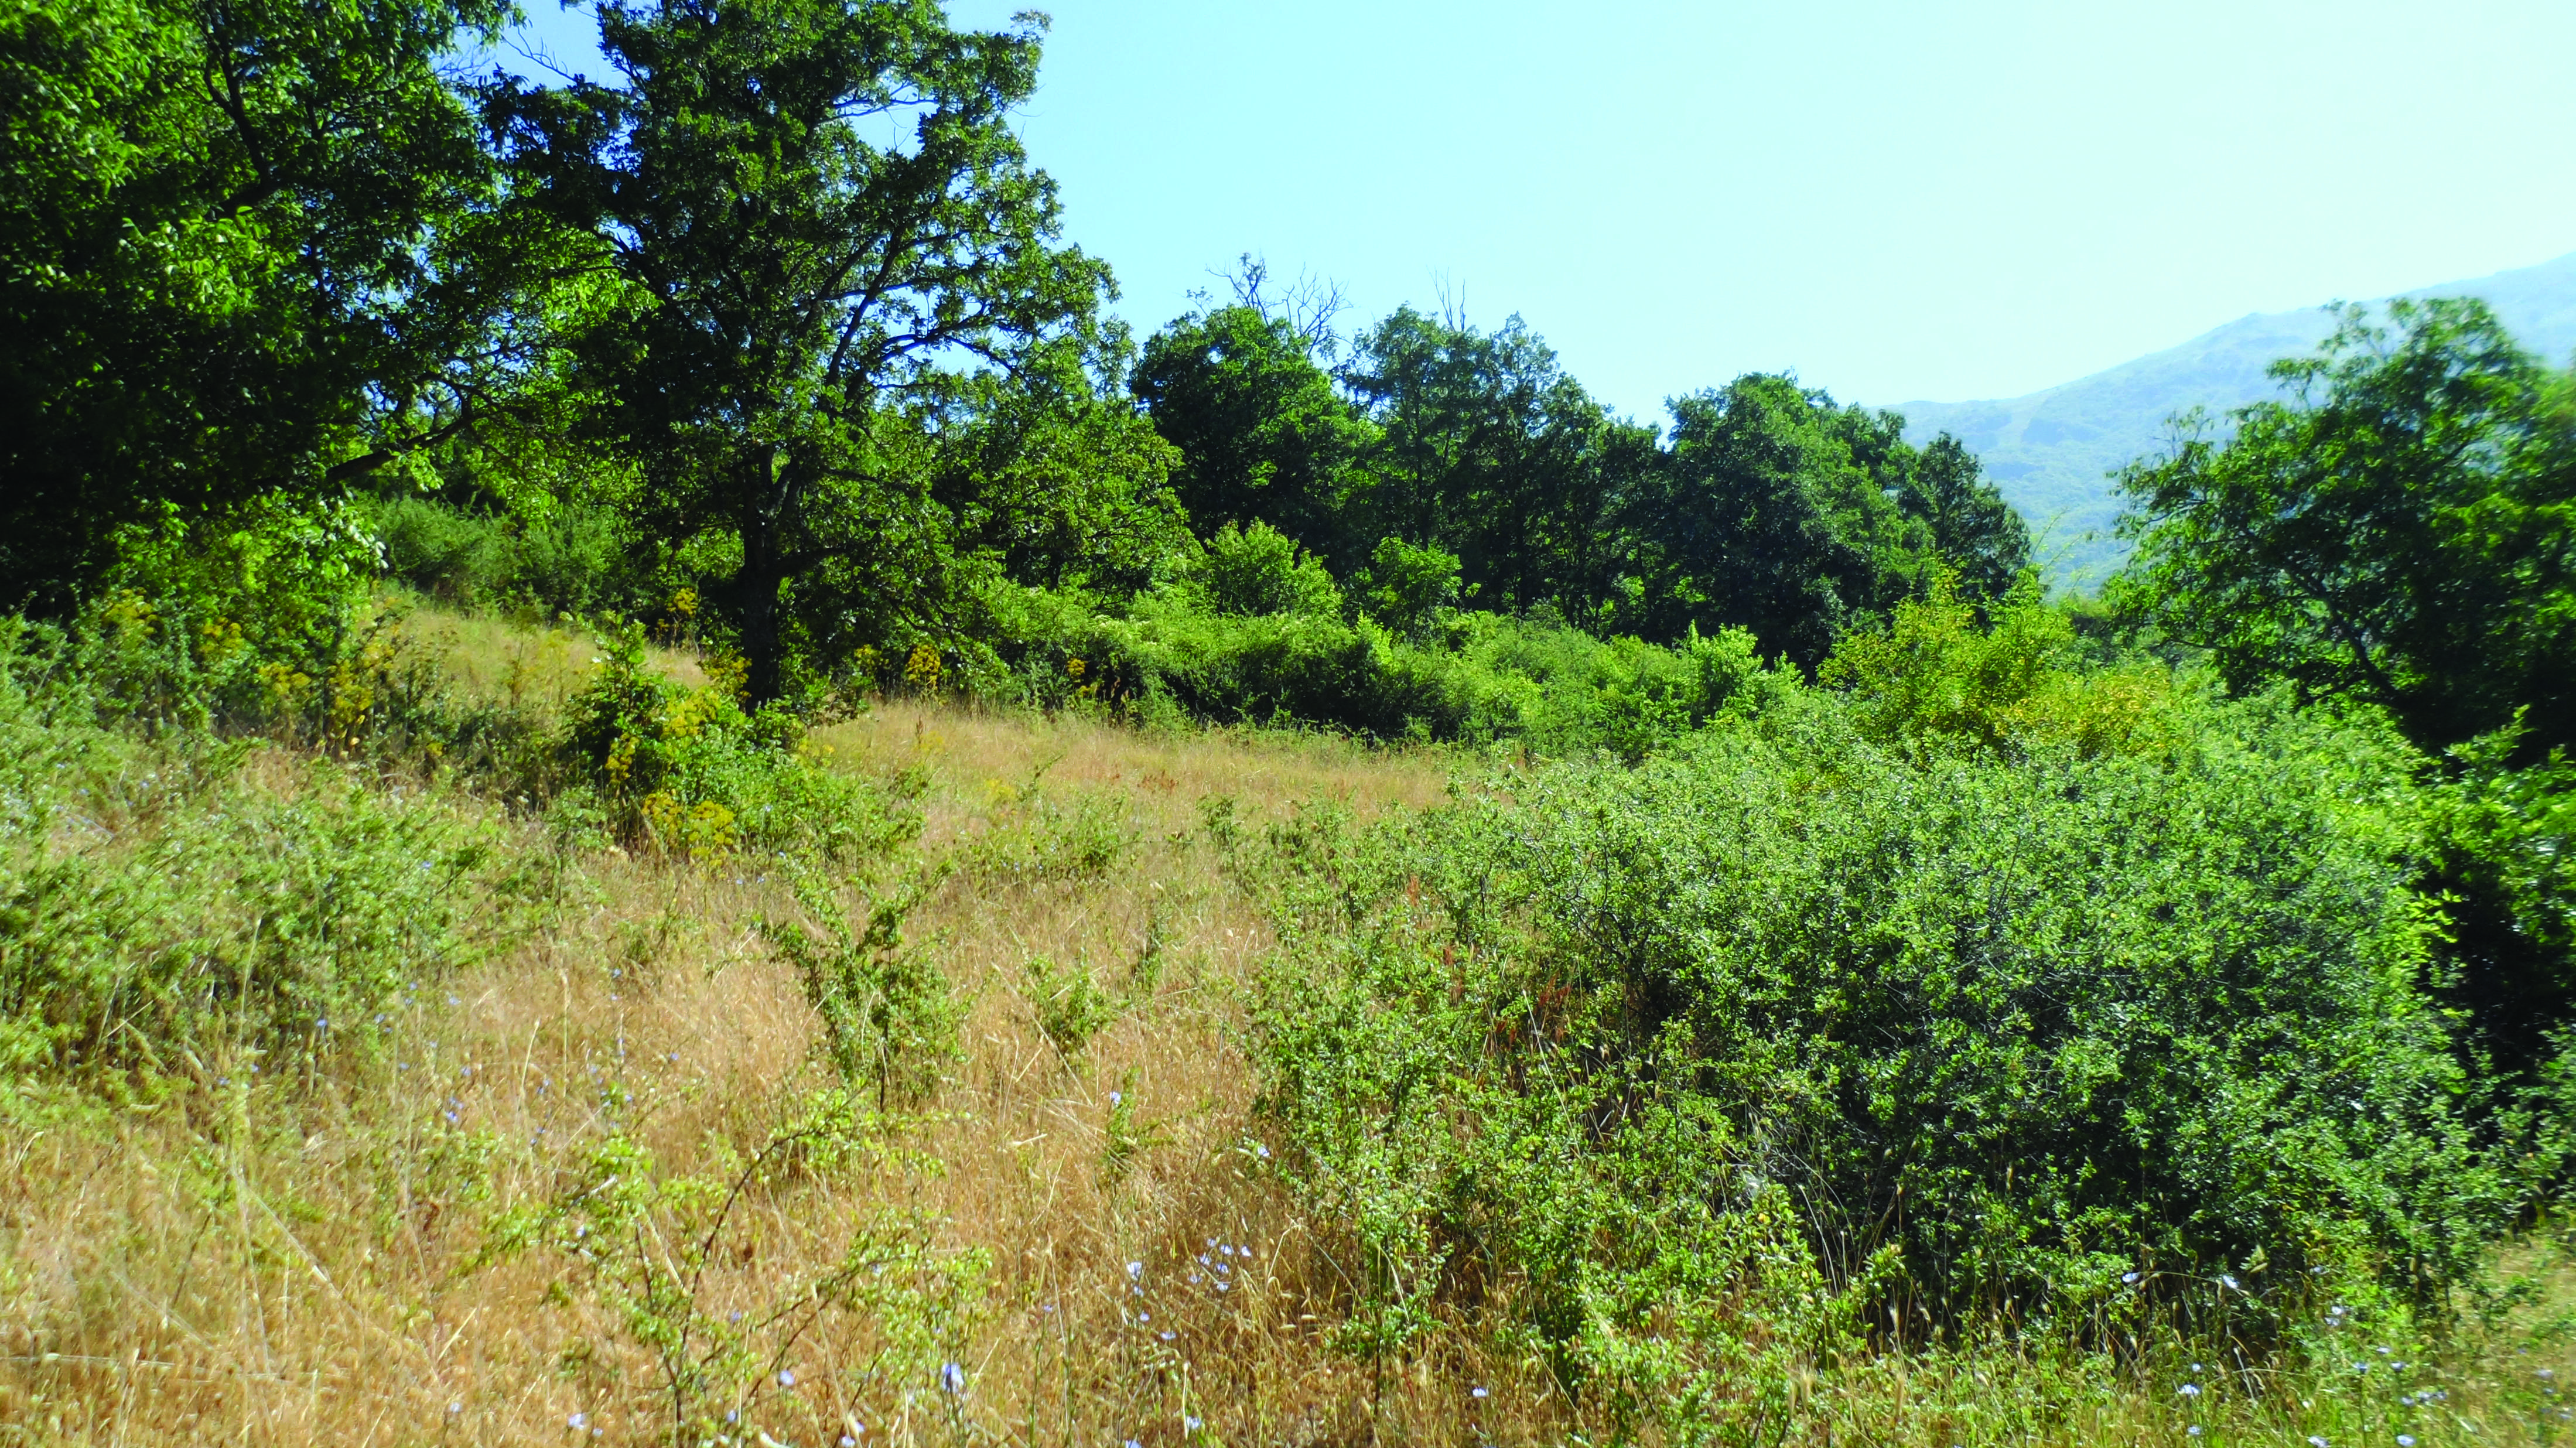 Abandoned grassland overgrown by shrubs and trees